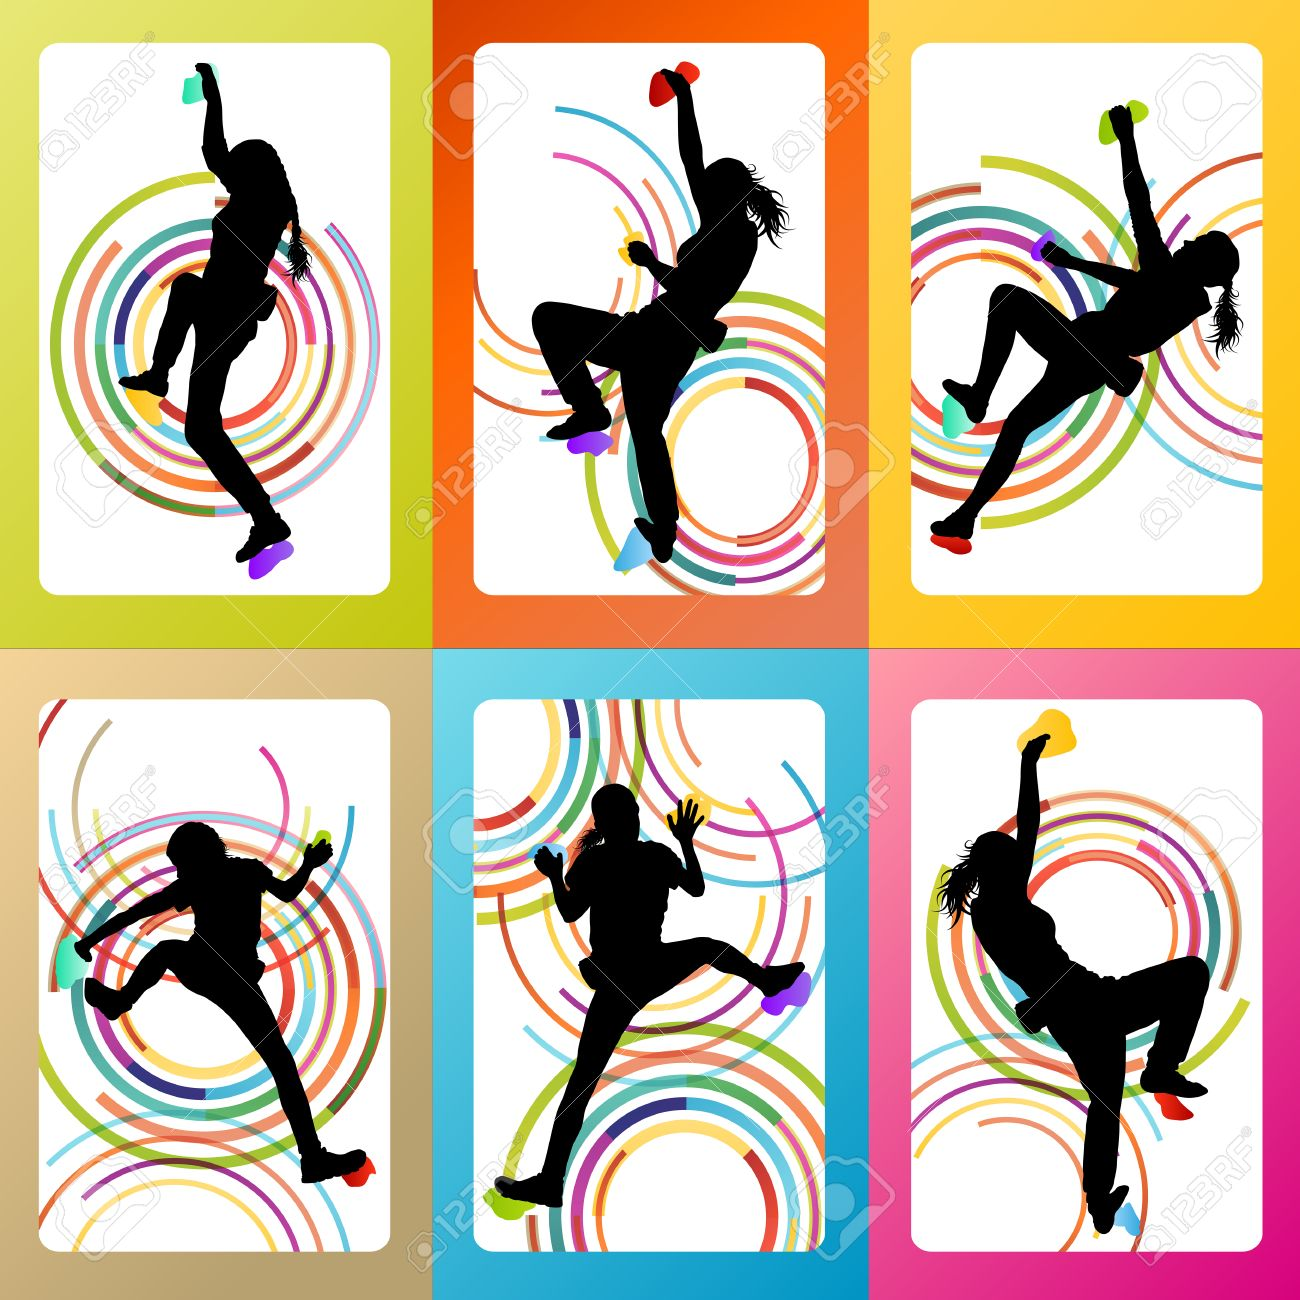 1300x1300 Girl Climbing Rock Wall Set Vector Background Concept For Poster